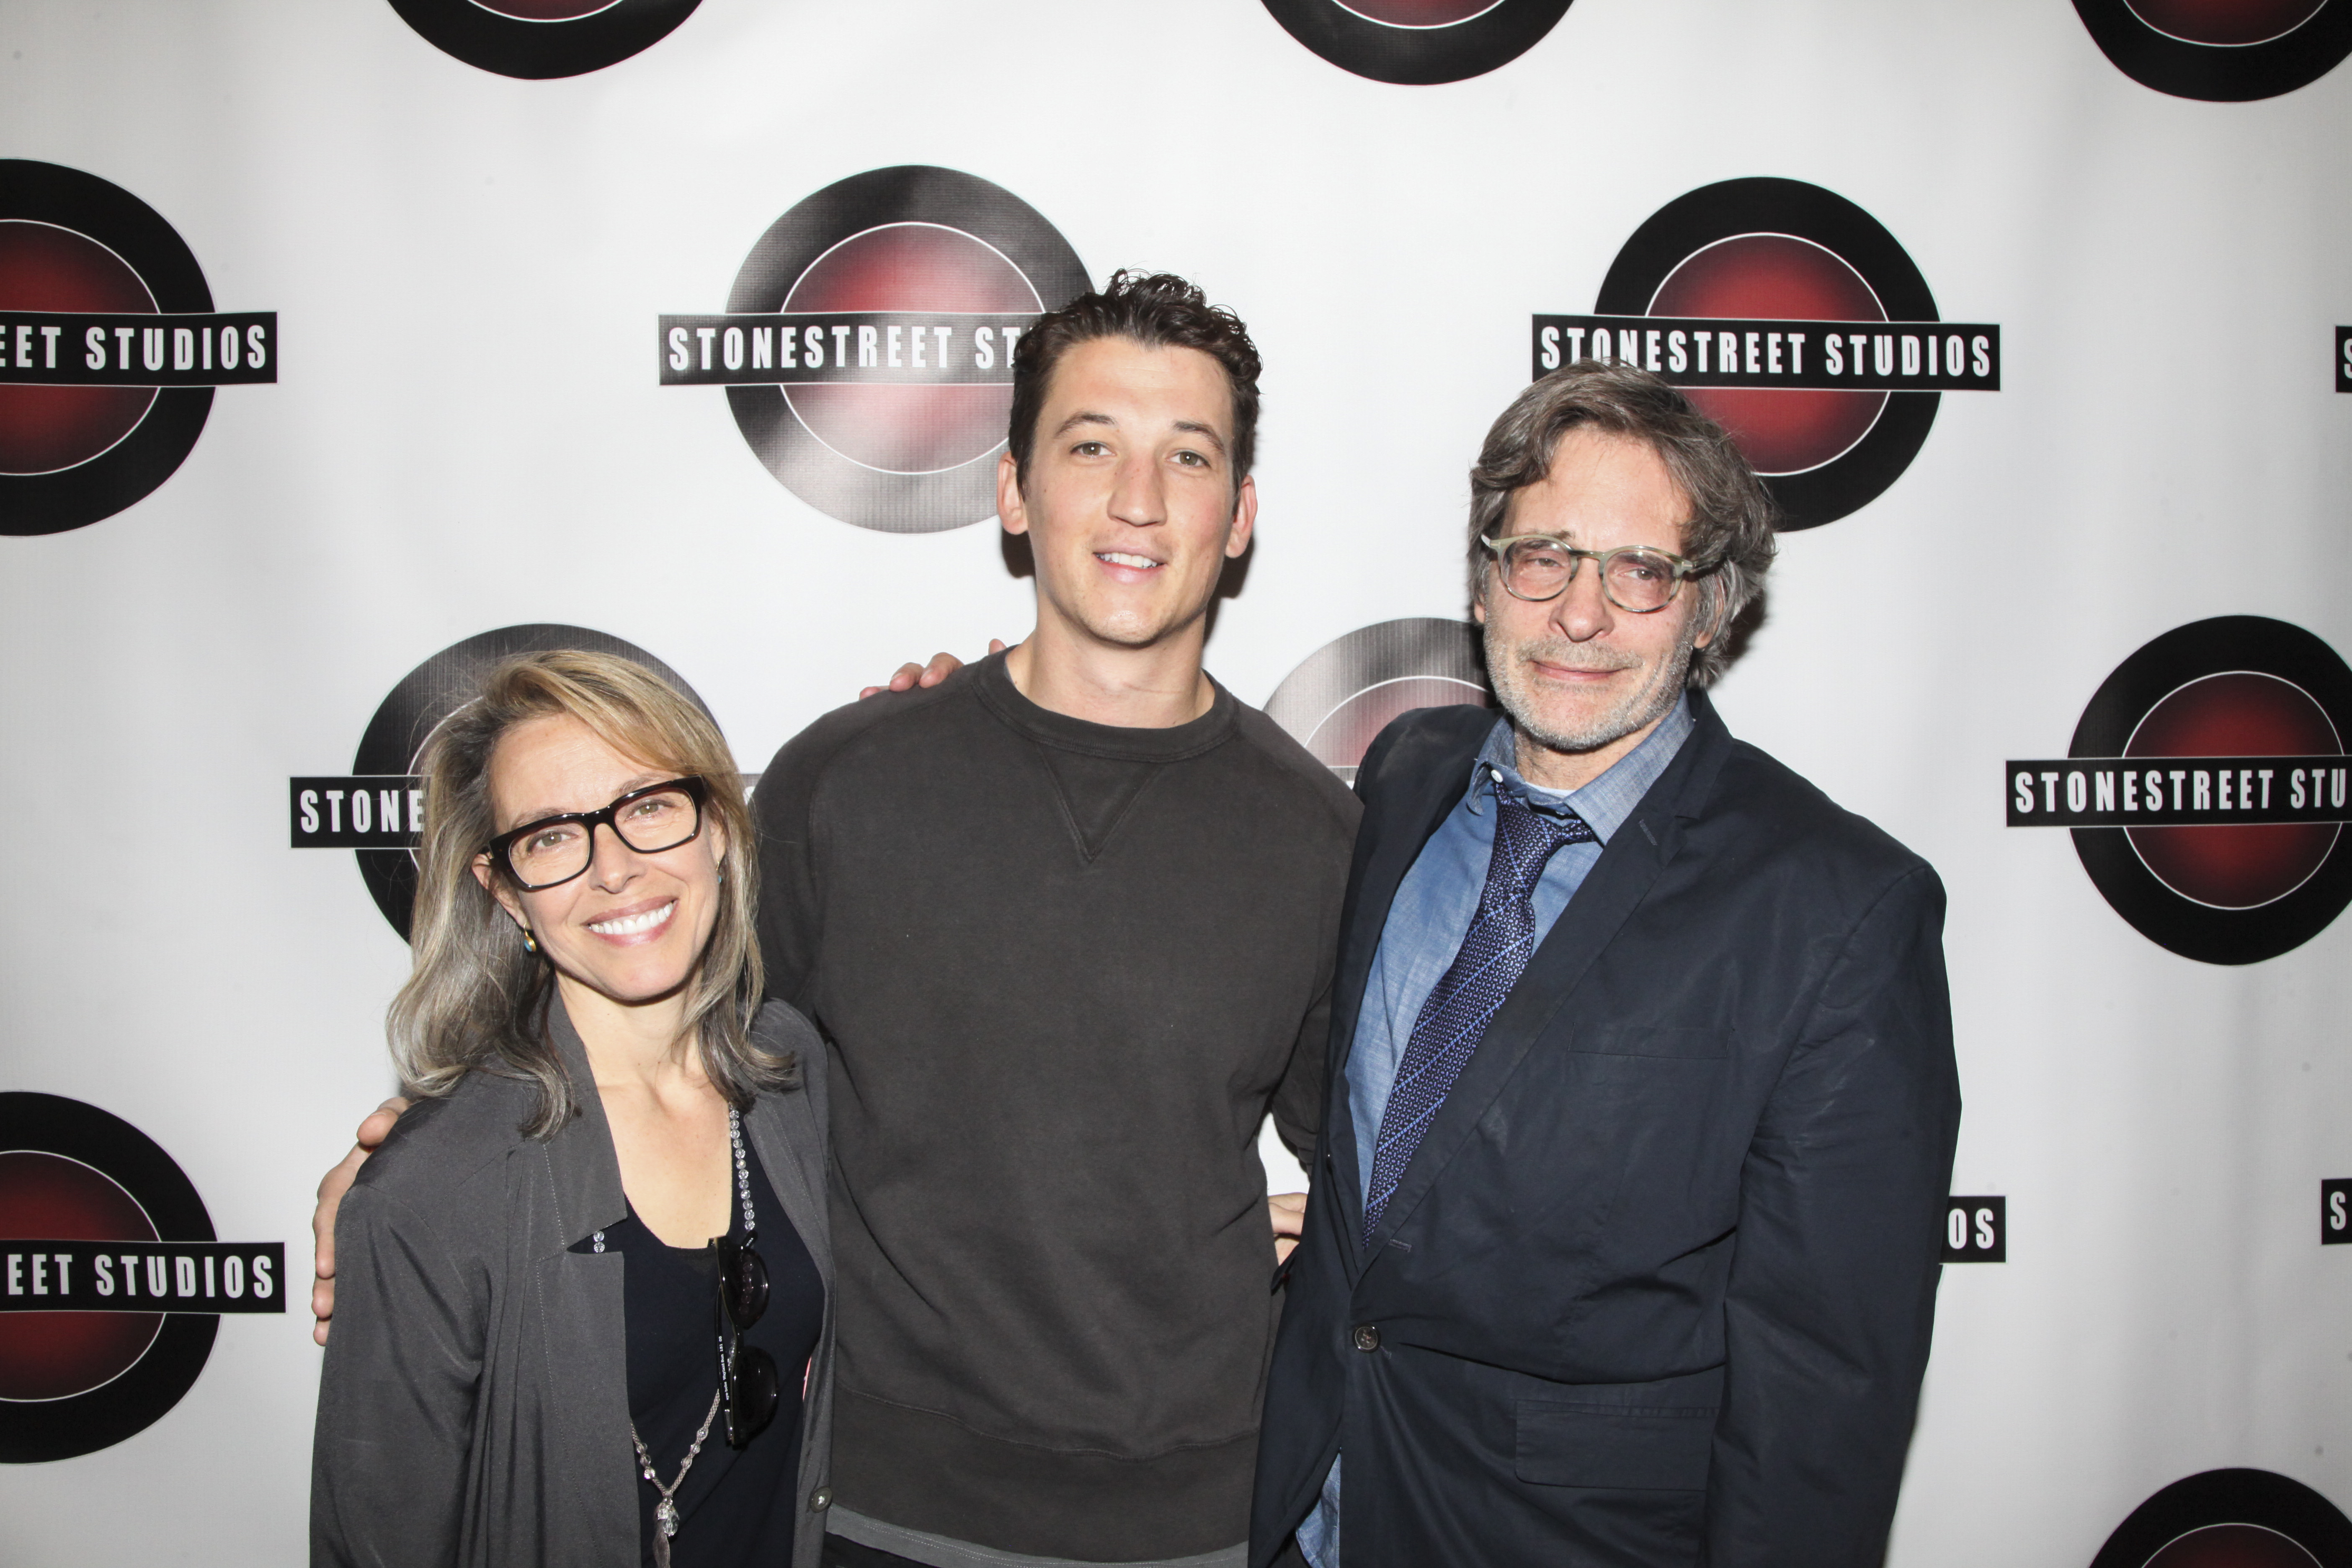 Stonestreet Studios celebrates 25 years of filmmaking with alumnus Miles Teller